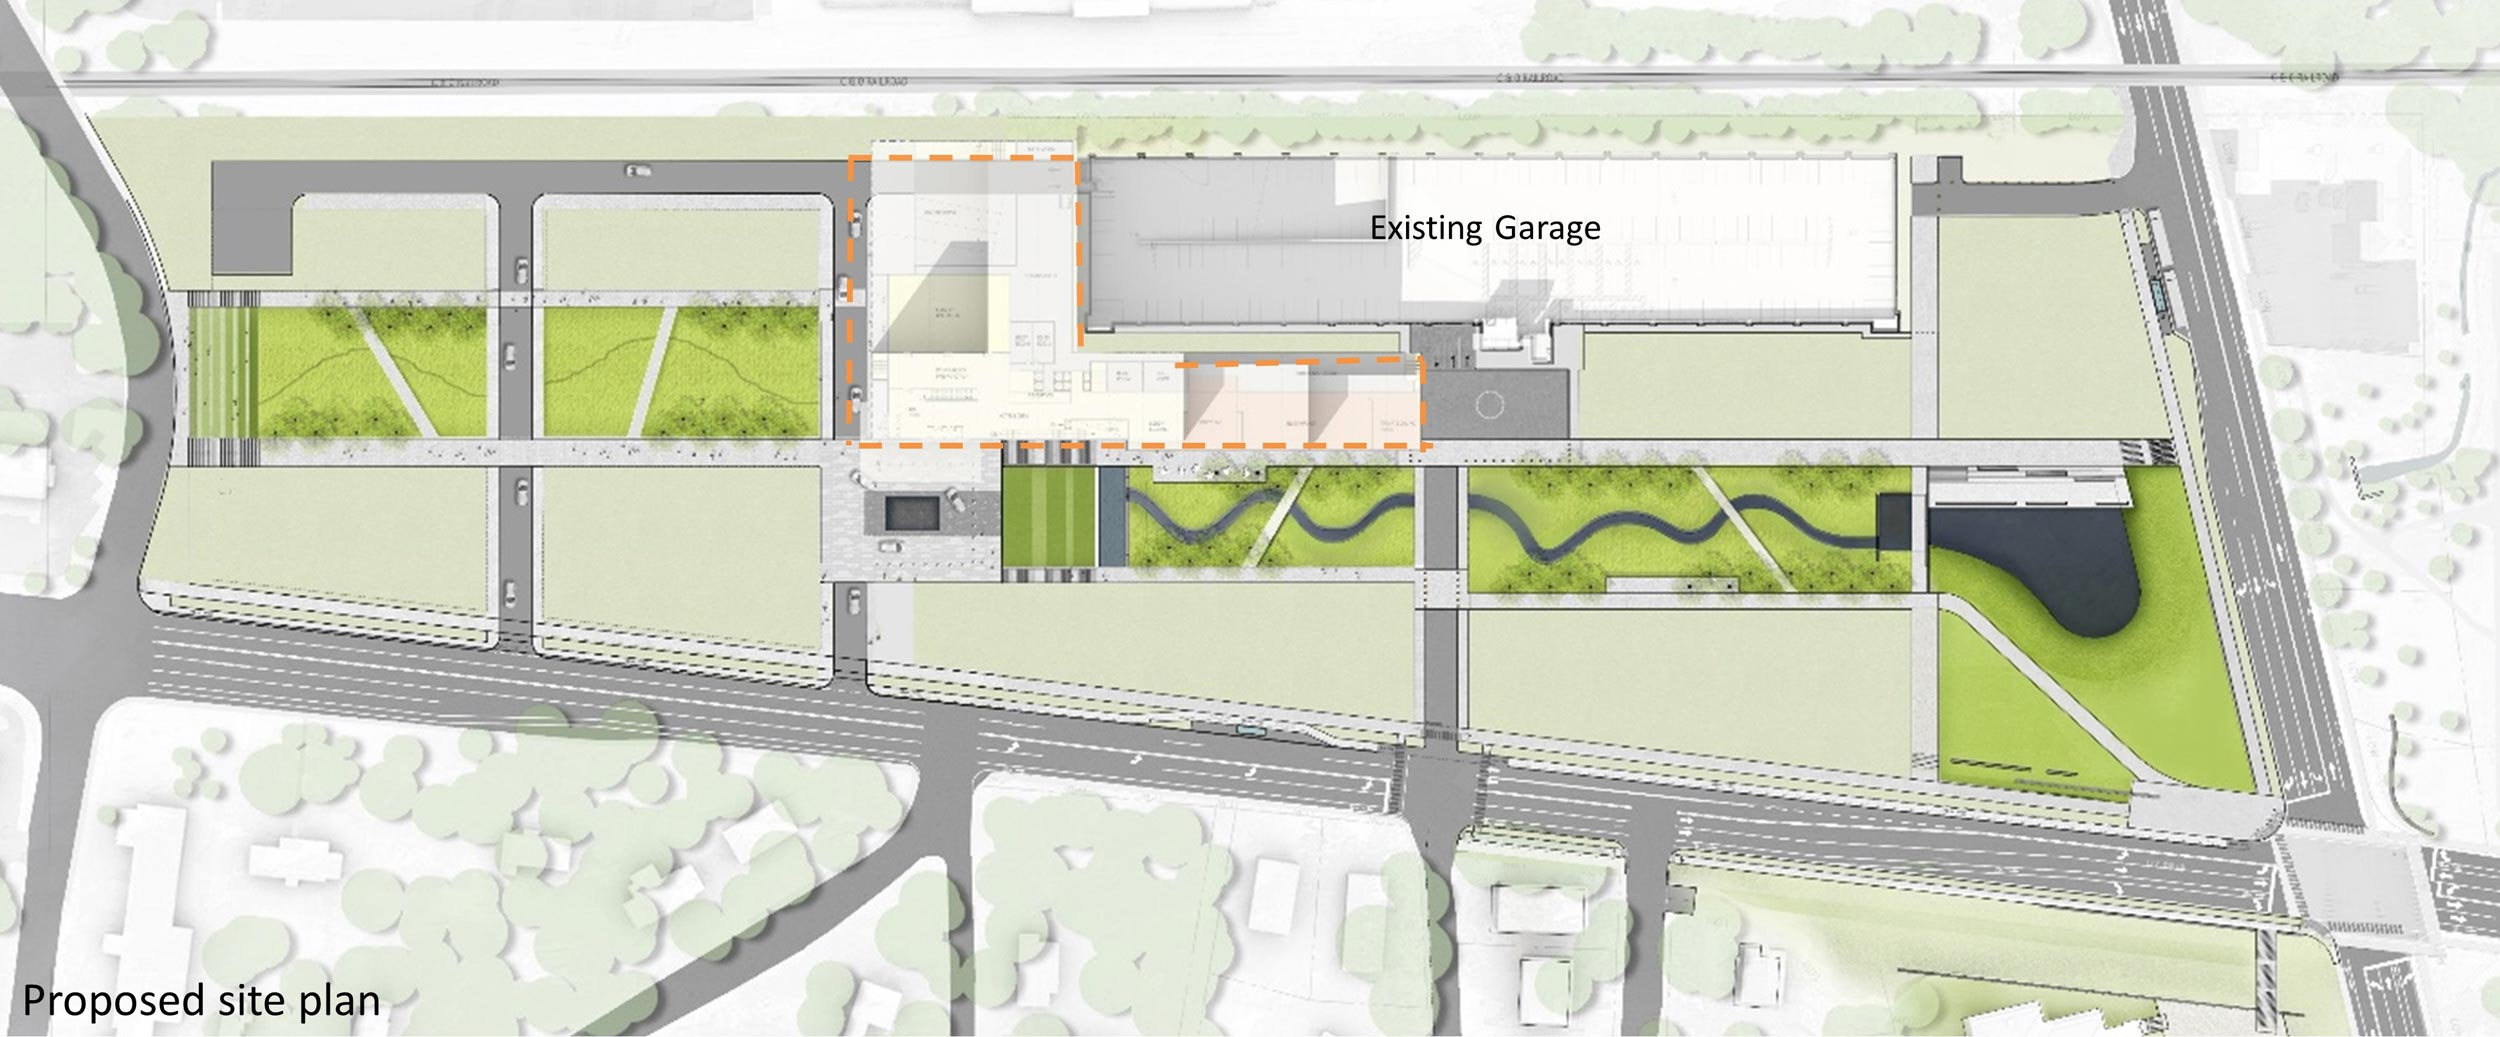 Preliminary site plans for the Ivy Road site include preserving a spine of natural green spaces.